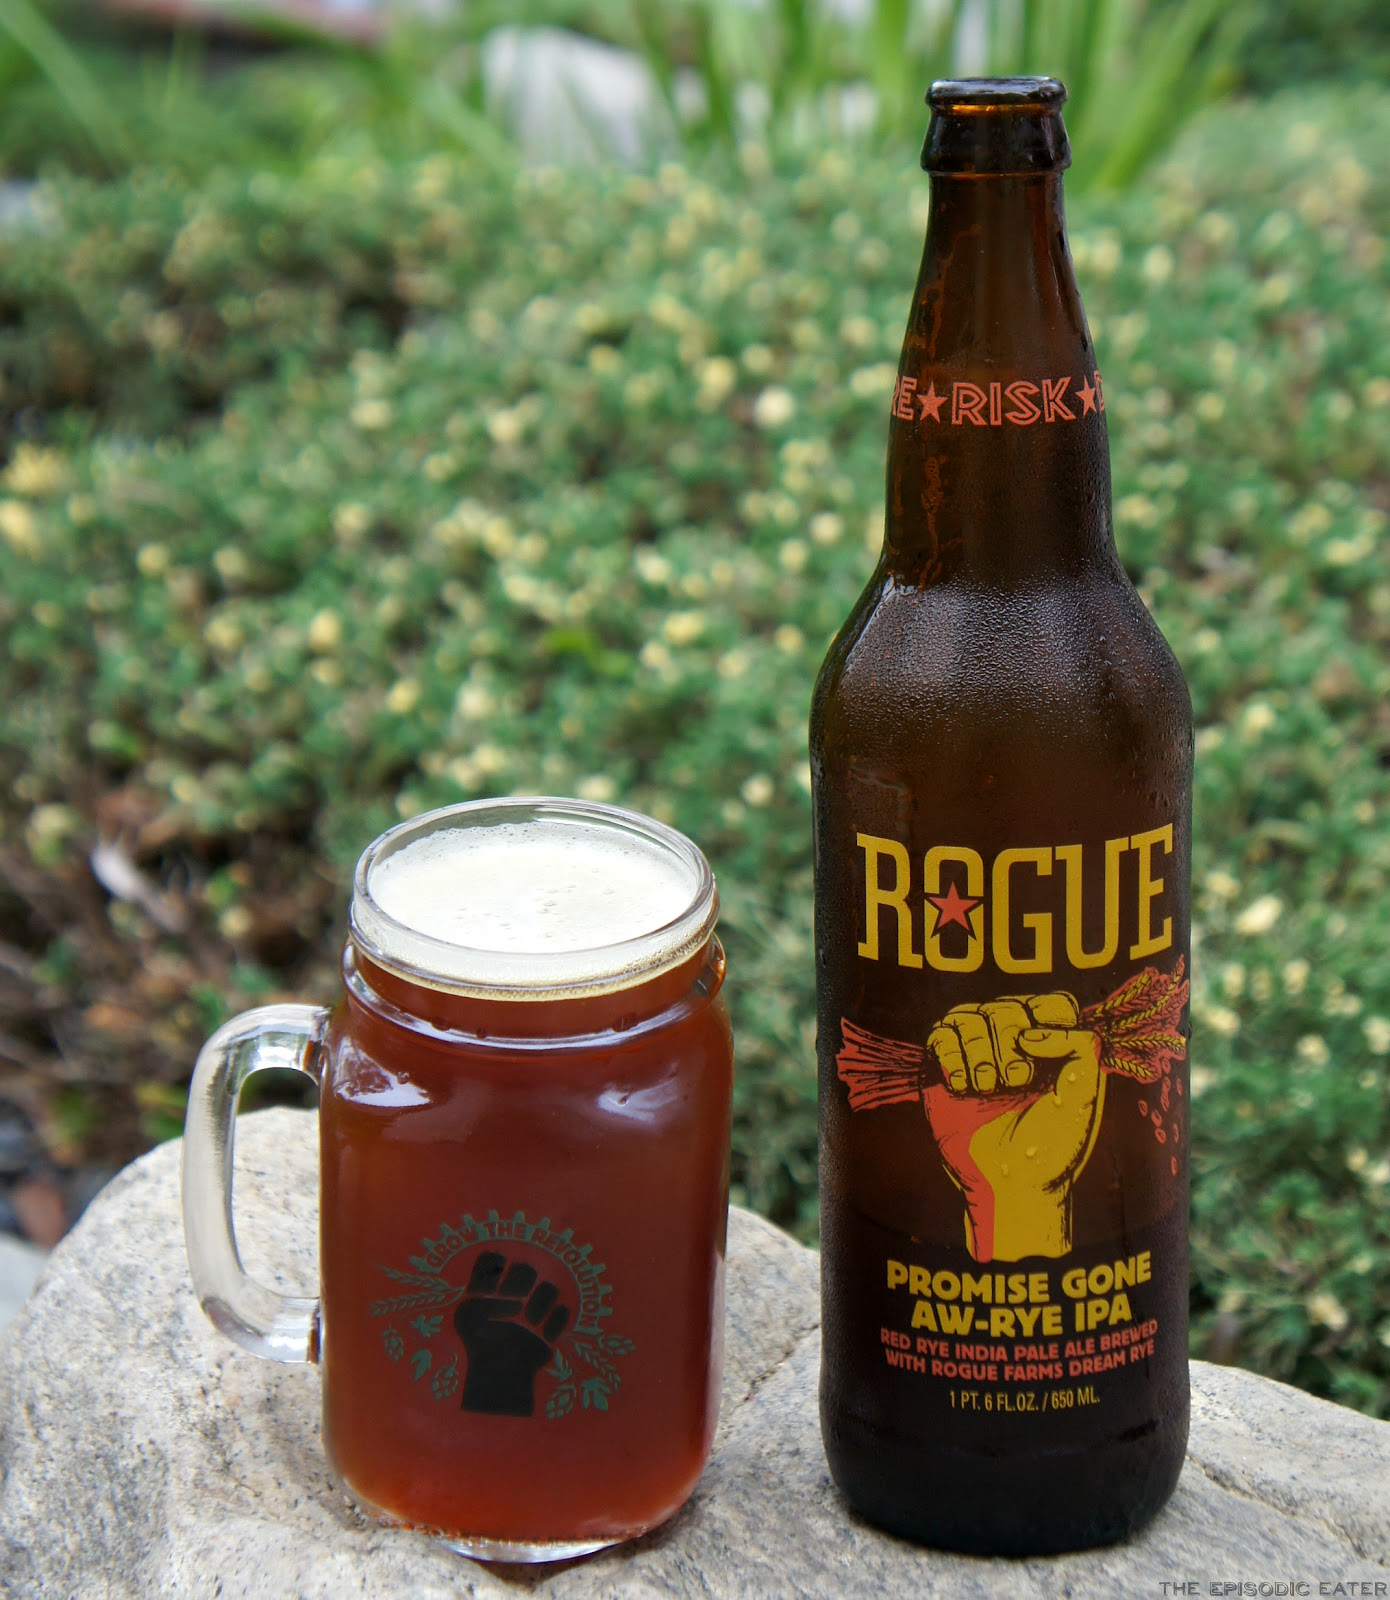 December 2016 Beer Review - The Best Beers for Cold Weather on The Episodic Eater